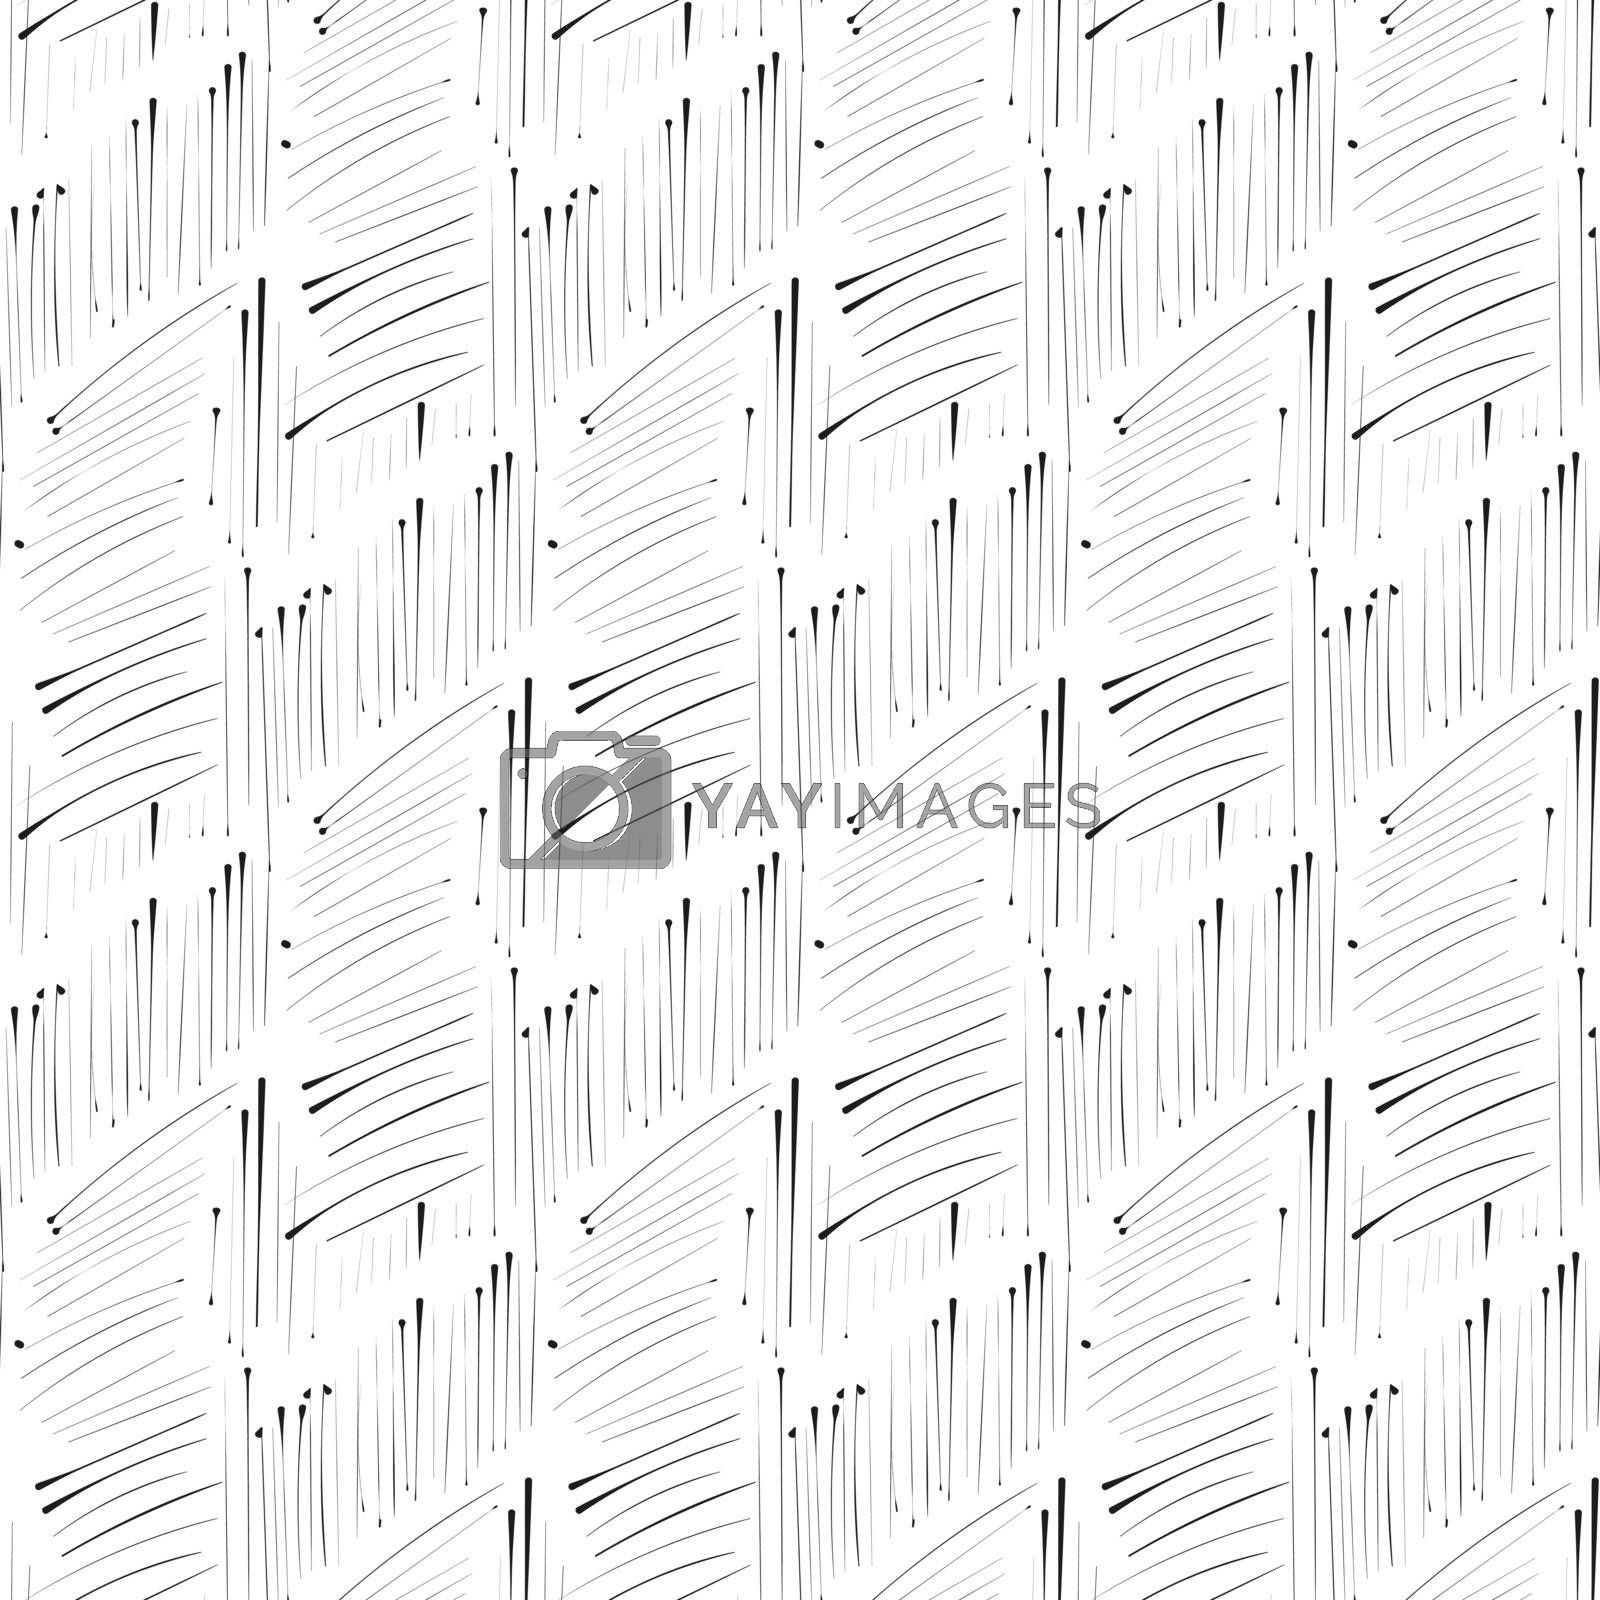 Hatch ink imitation hend drawn, seamless pattern